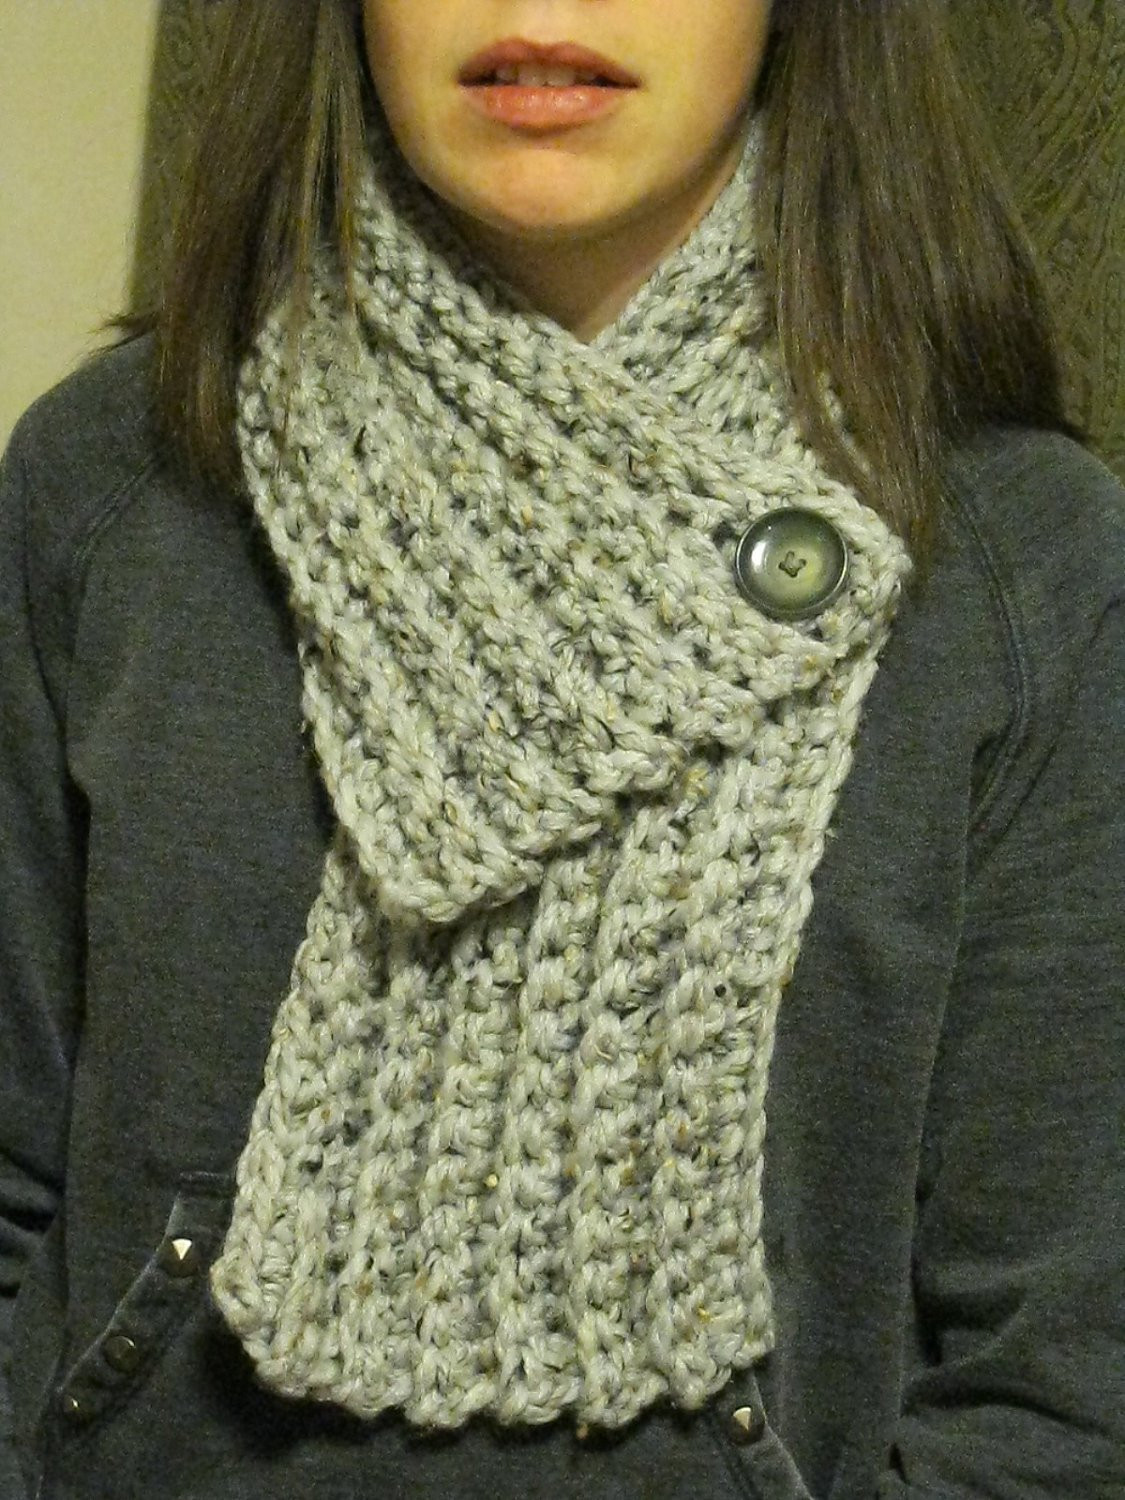 Crochet Cowl Scarf Inspirational Chandeliers & Pendant Lights Of Awesome 42 Pics Crochet Cowl Scarf